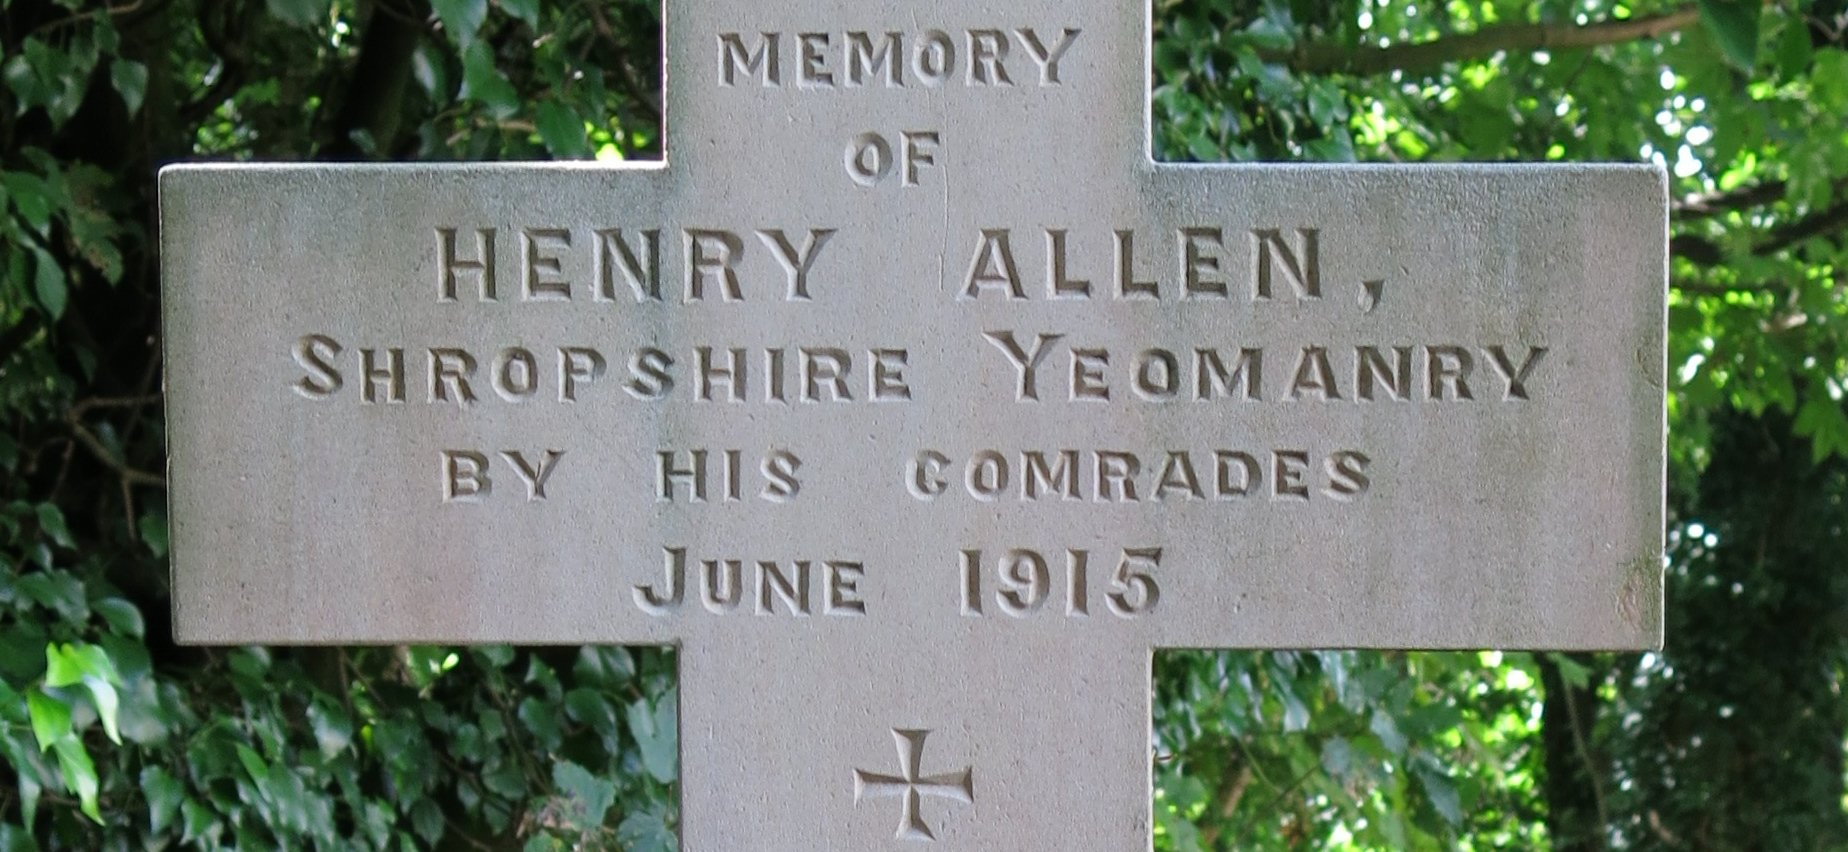 Private Henry Allen